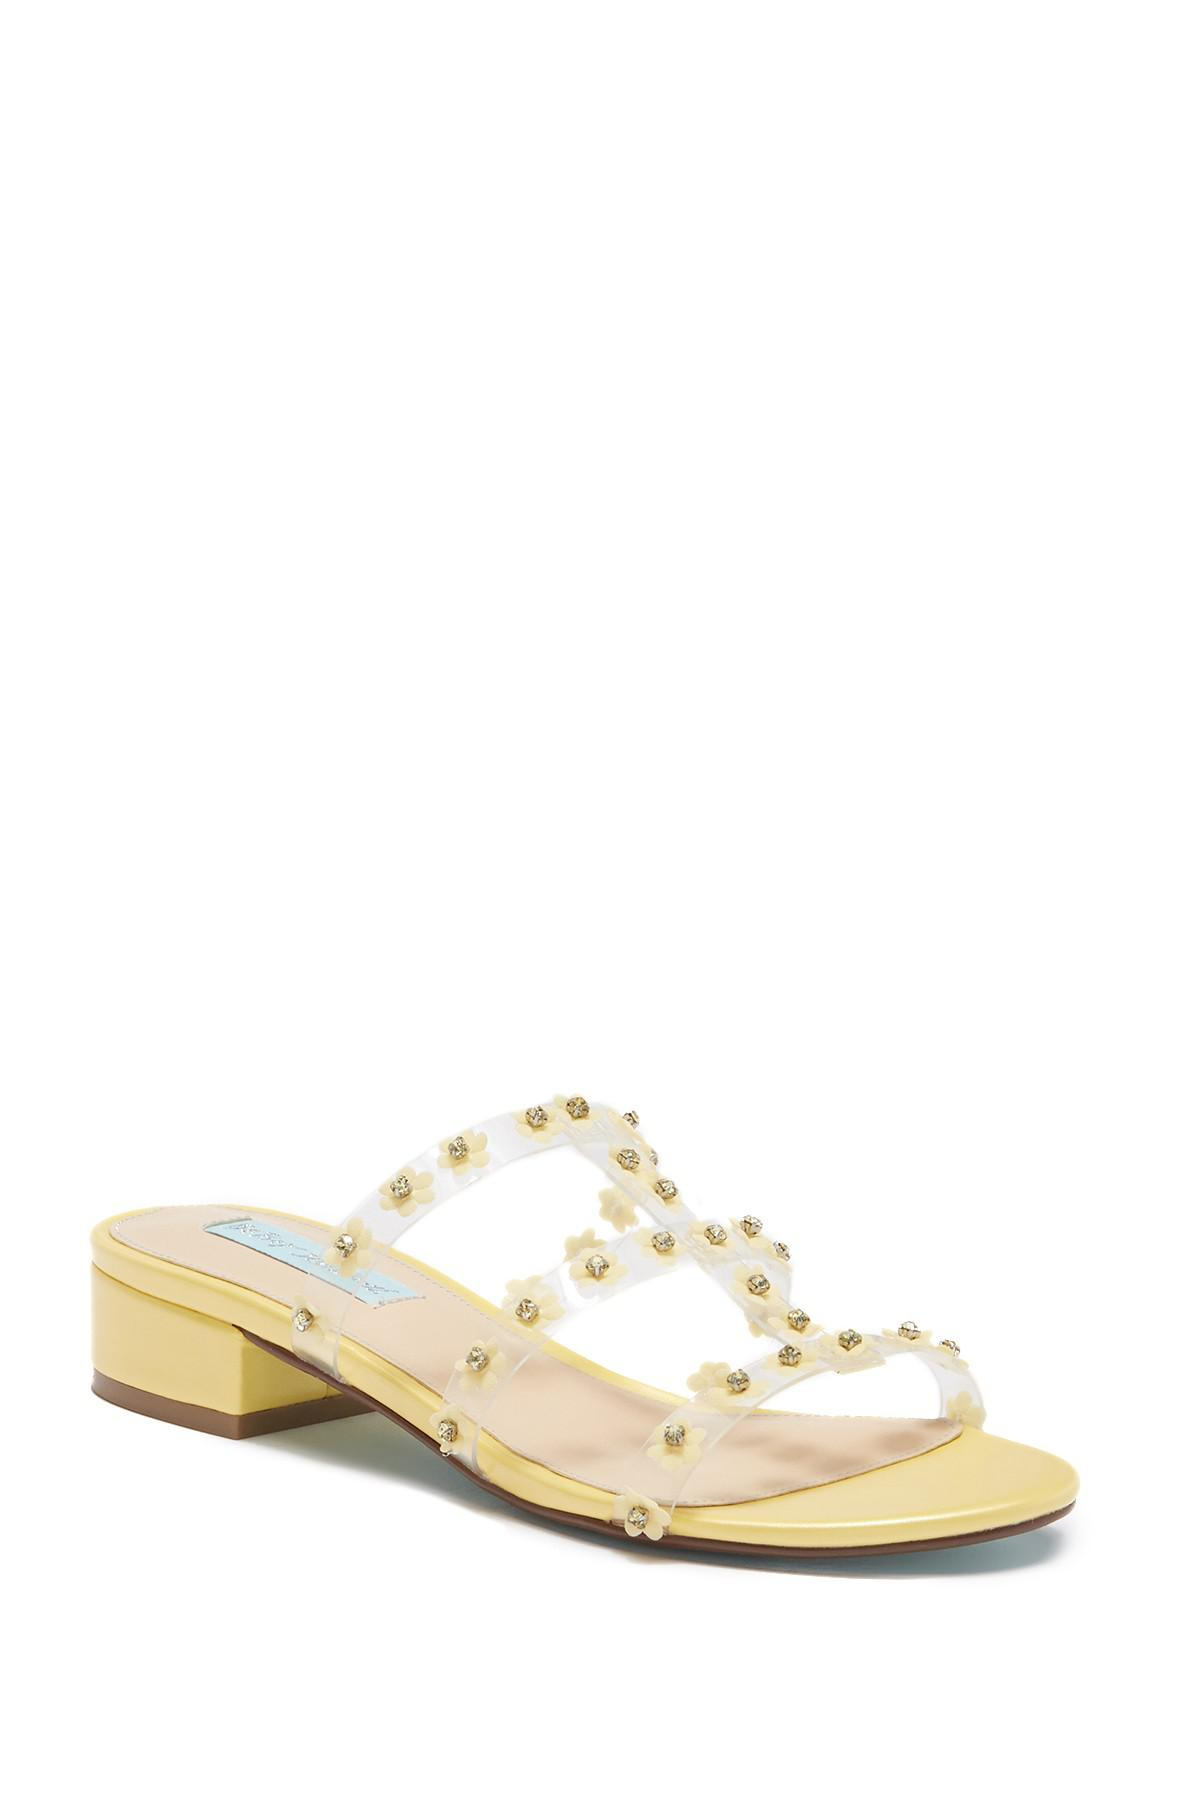 142229a5c41 Betsey Johnson Arlyn Floral Embellished Sandal in Yellow - Lyst